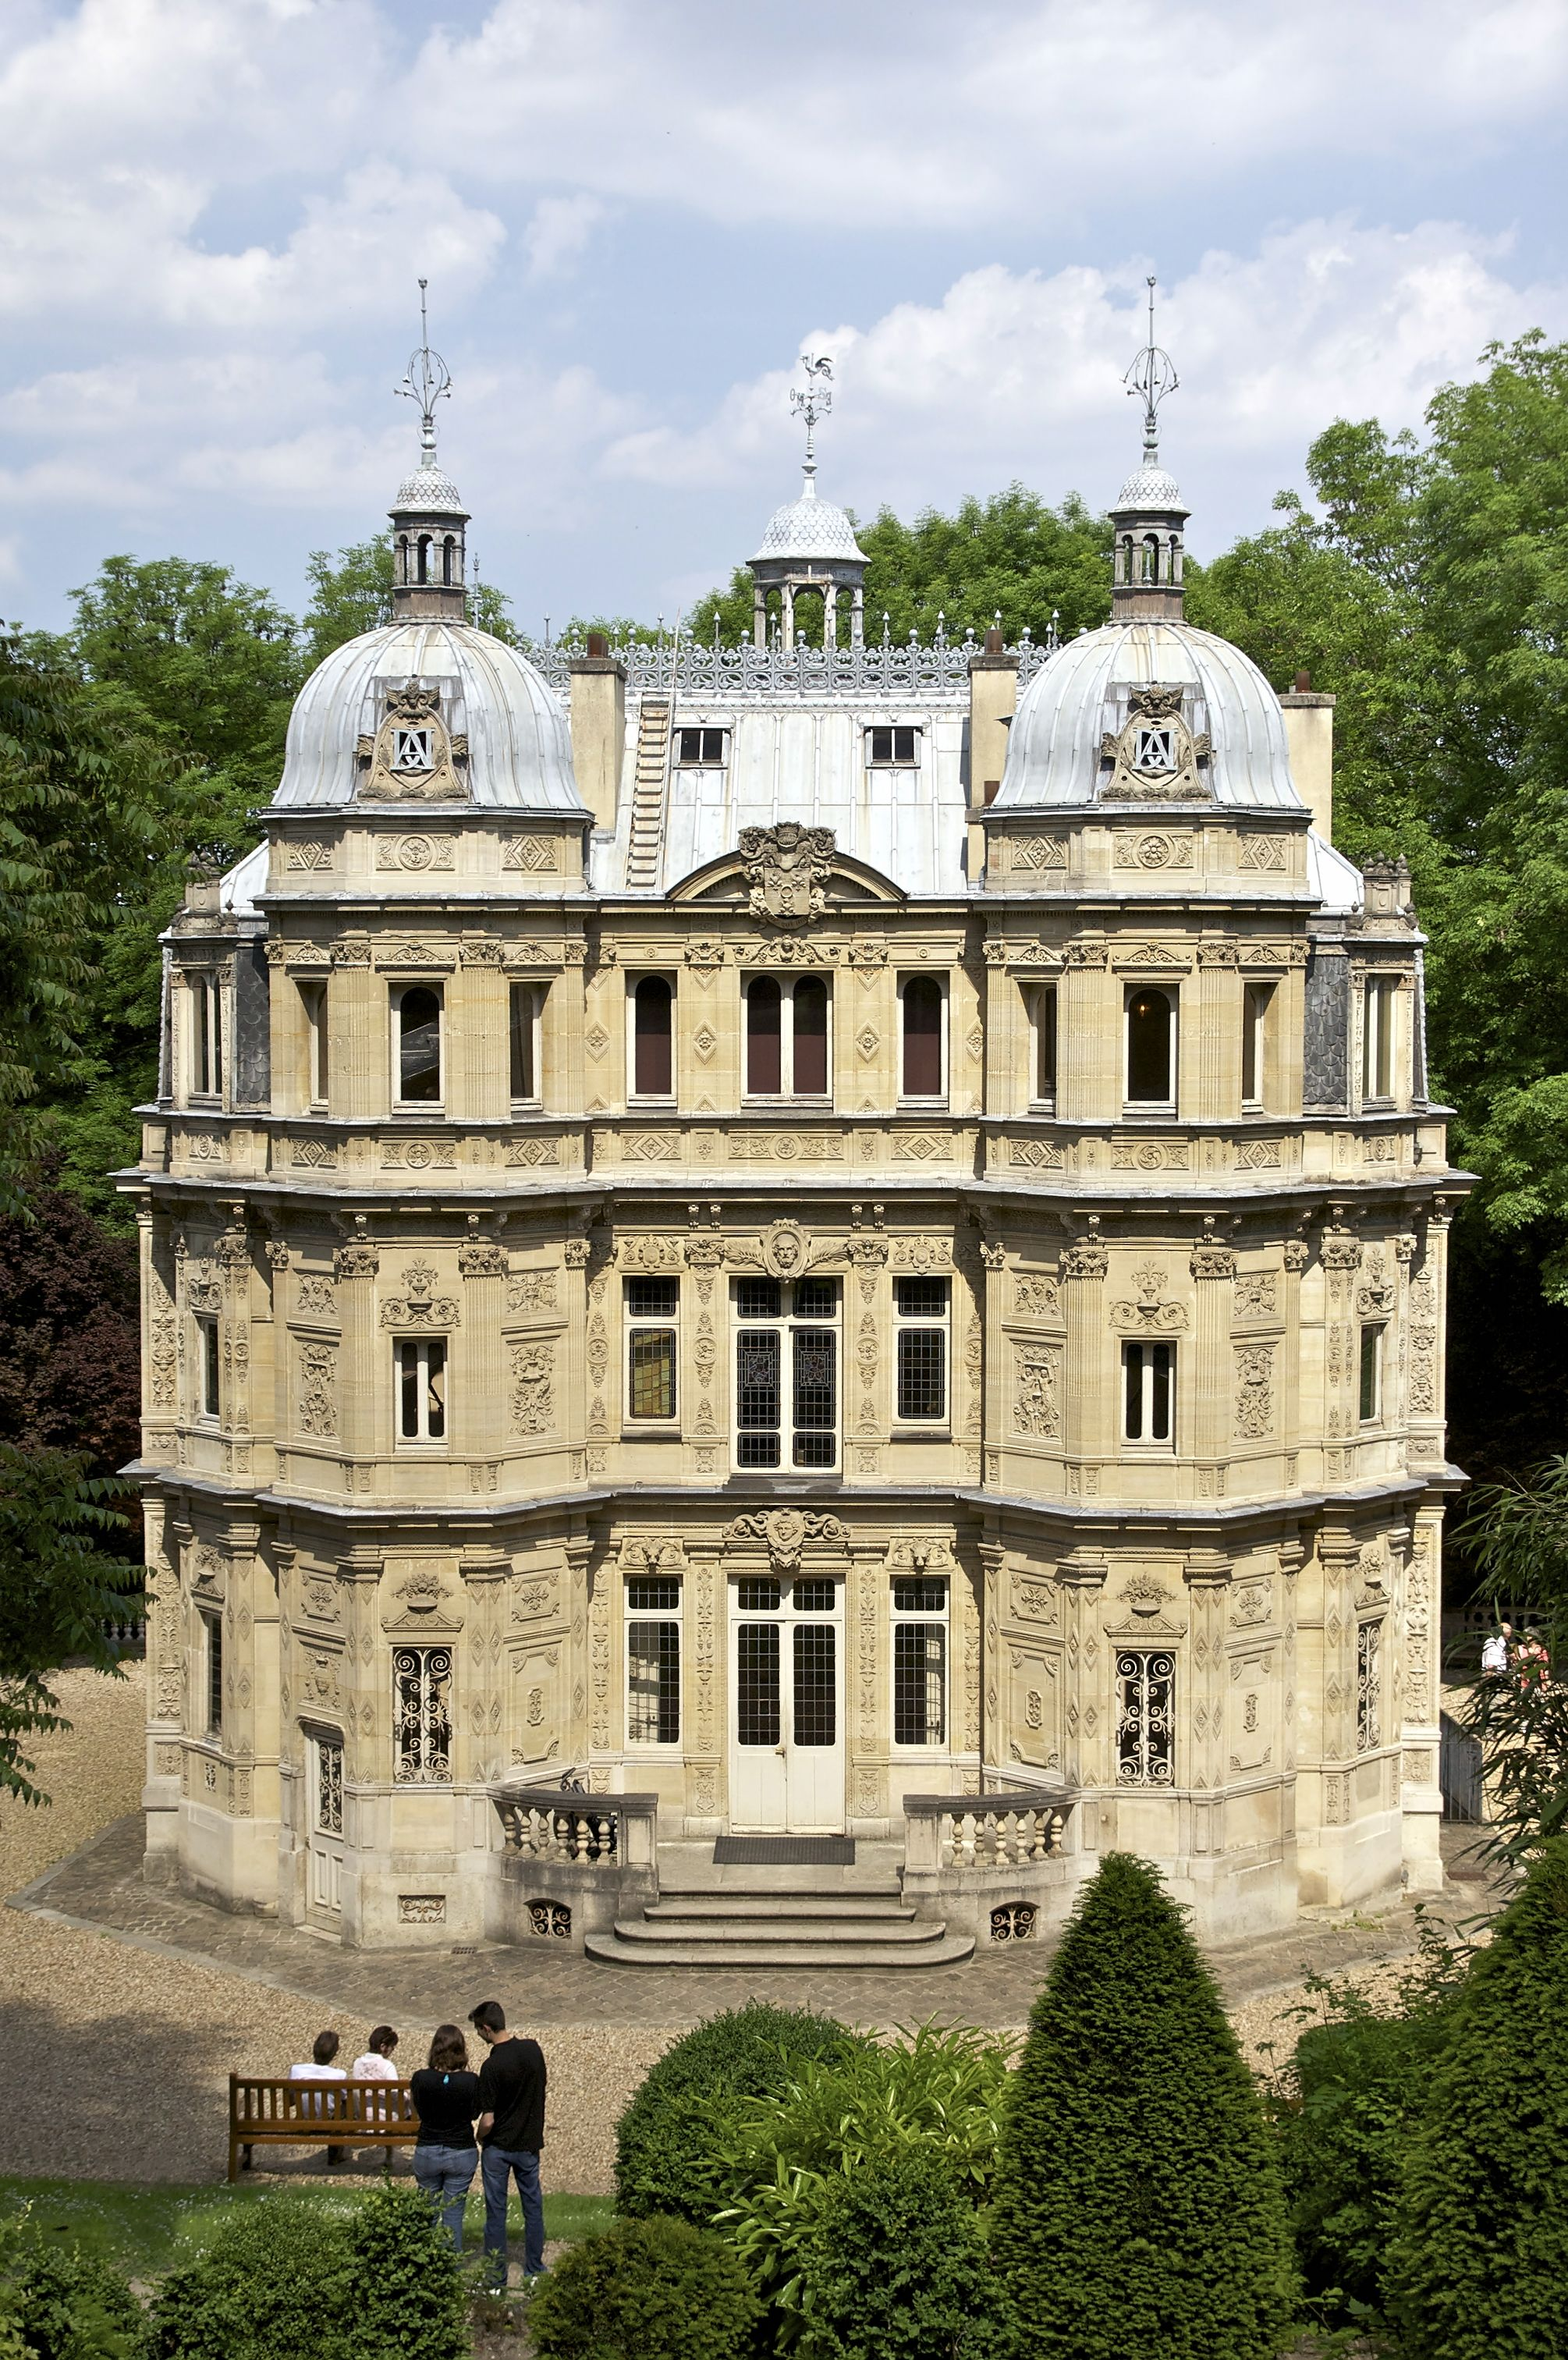 Not far from chateau marly modern tourist visit alexandre dumas chateau monte cristo marly france that was built in 1846 google search